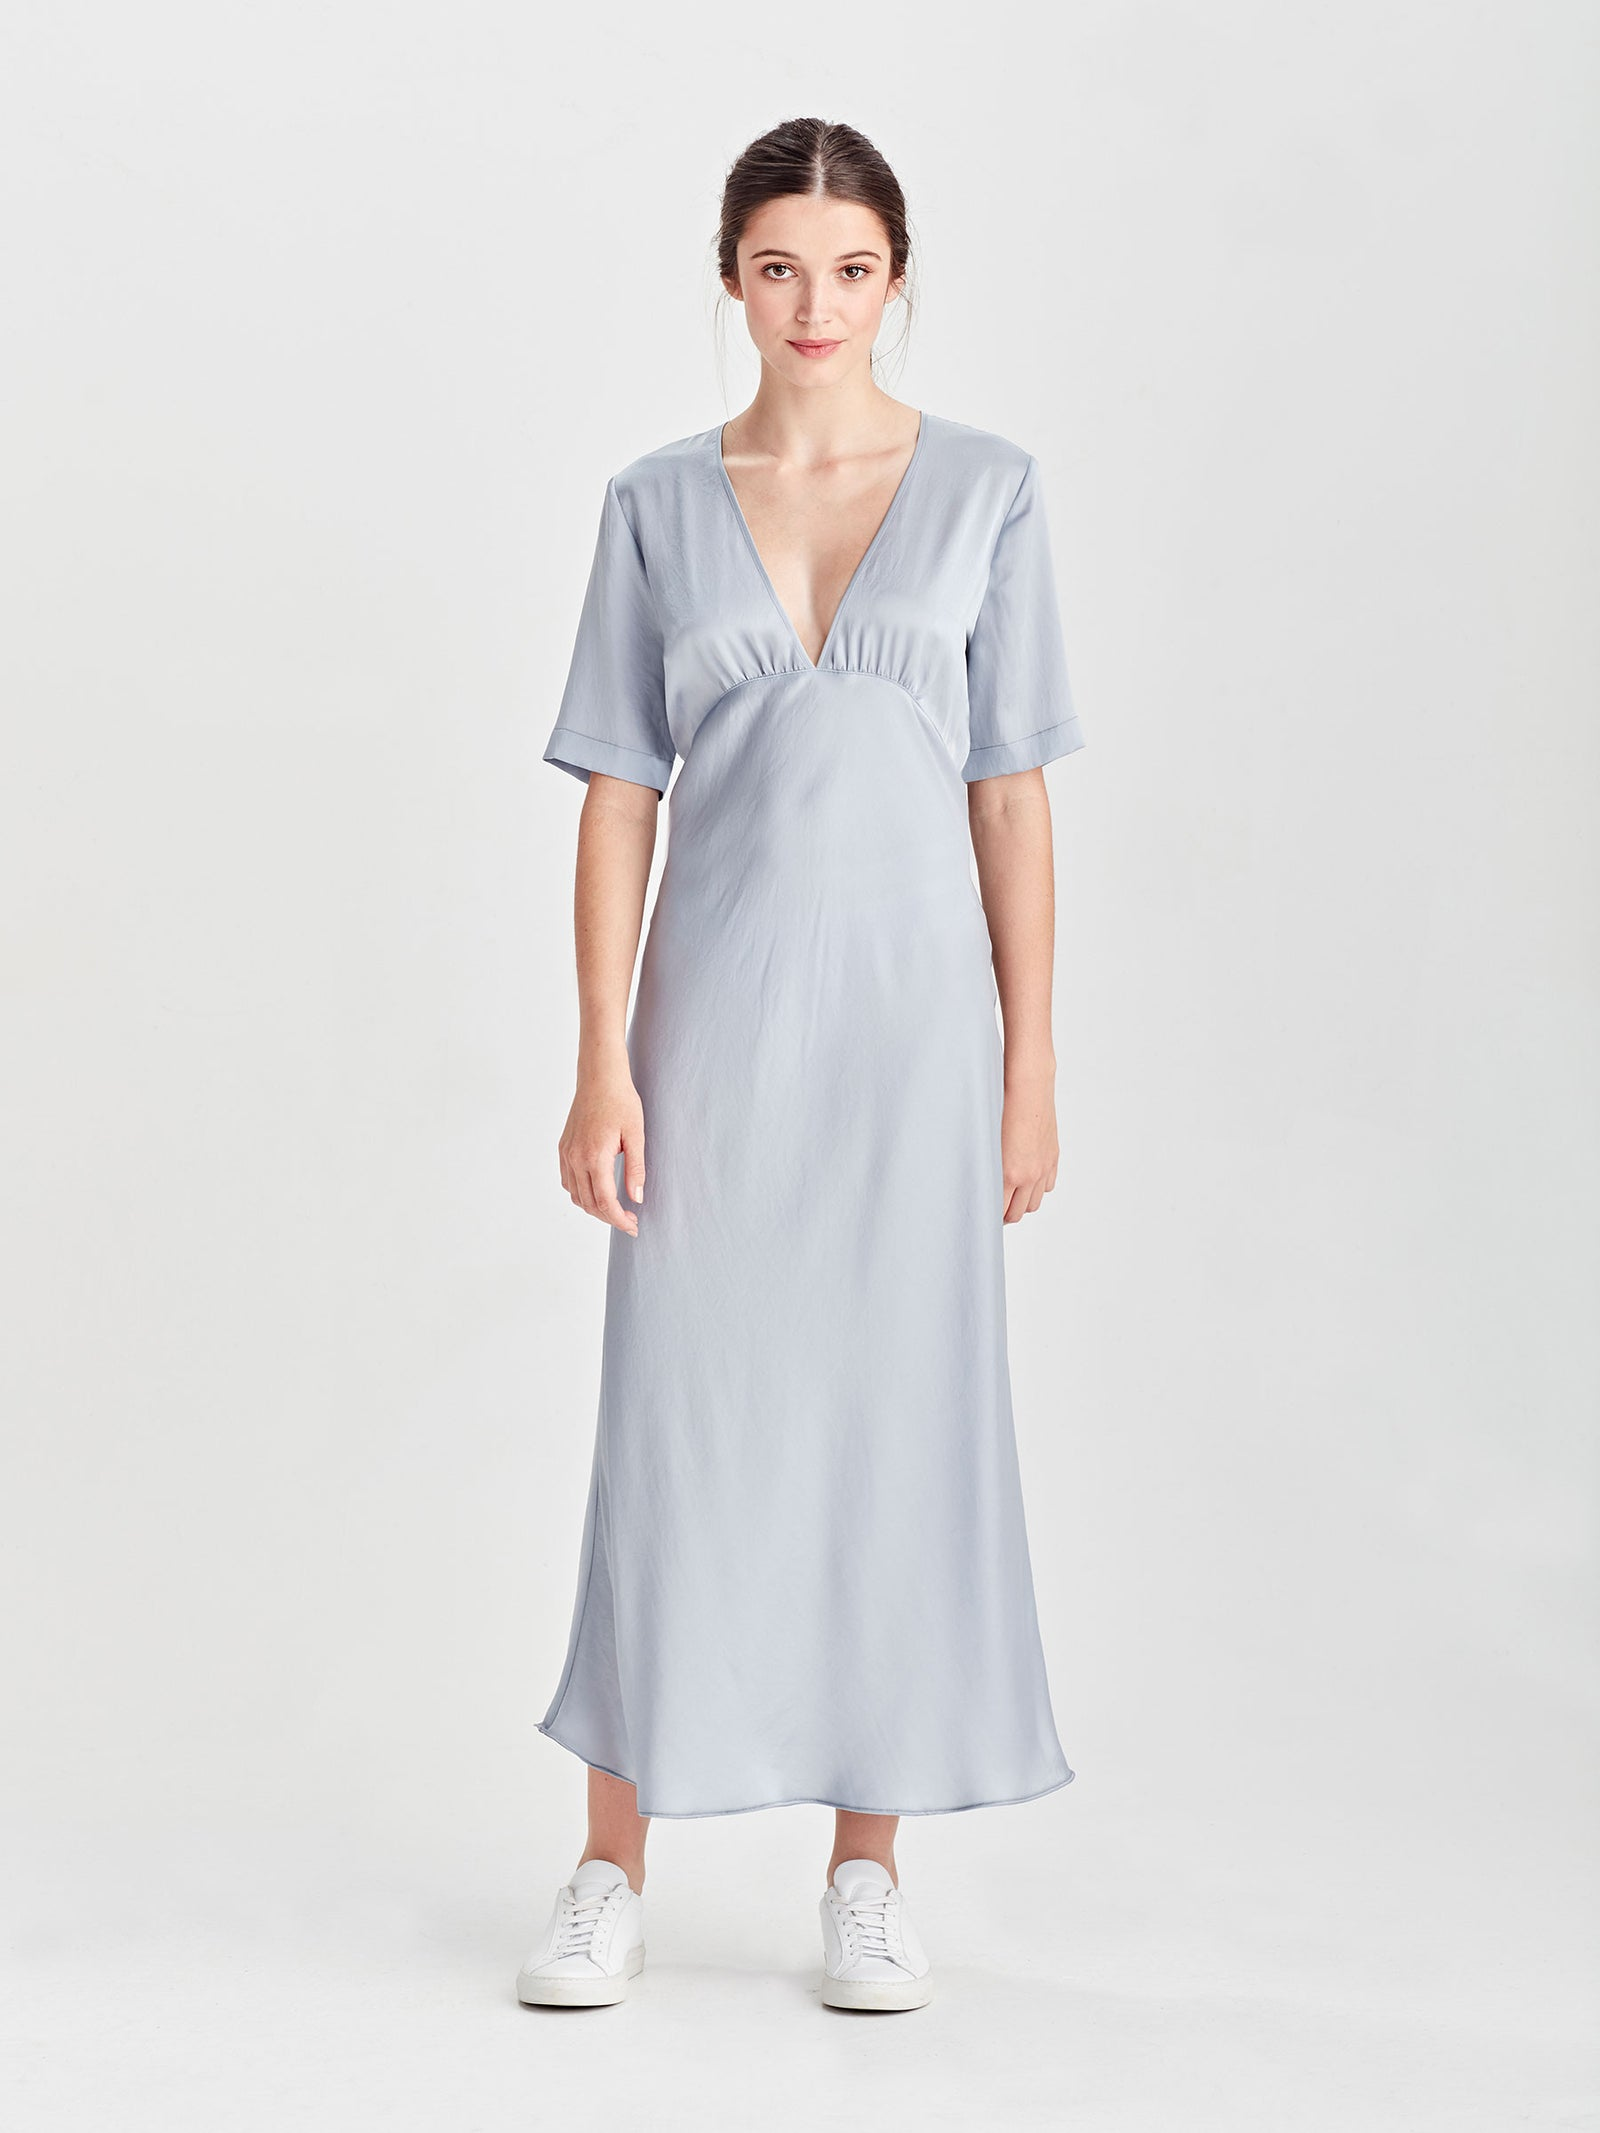 Covet Dress (Satin Triacetate) Powder